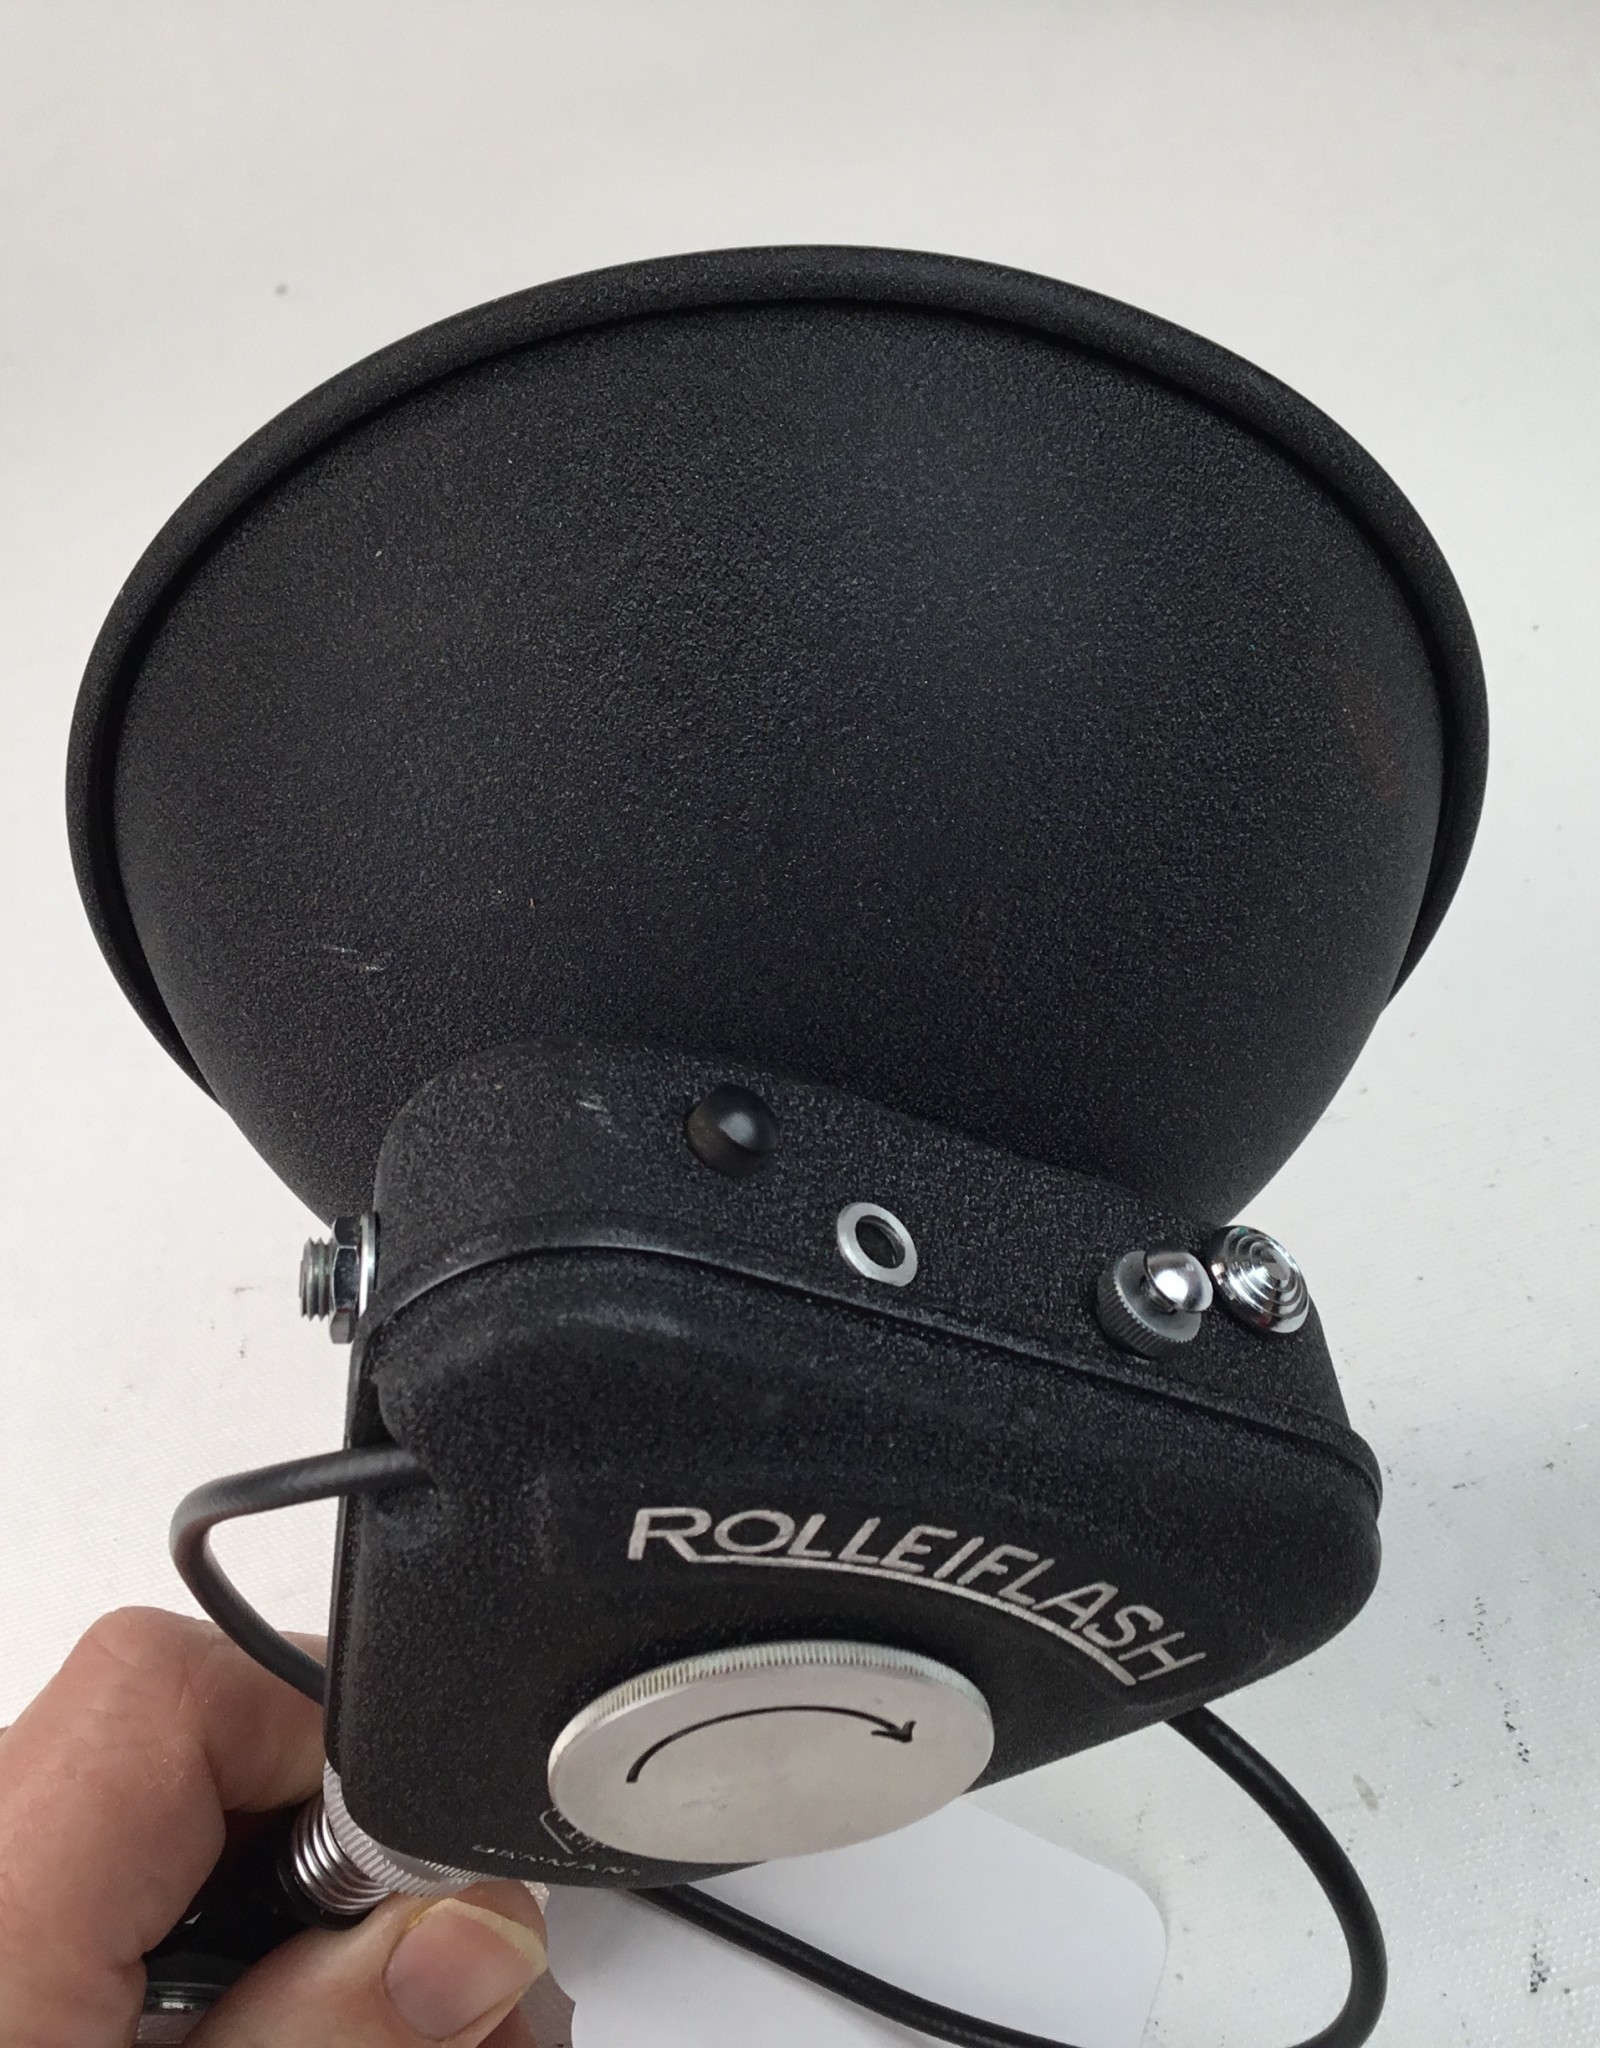 Rollei Rolleiflex Rolleiflash Sold As Is Used